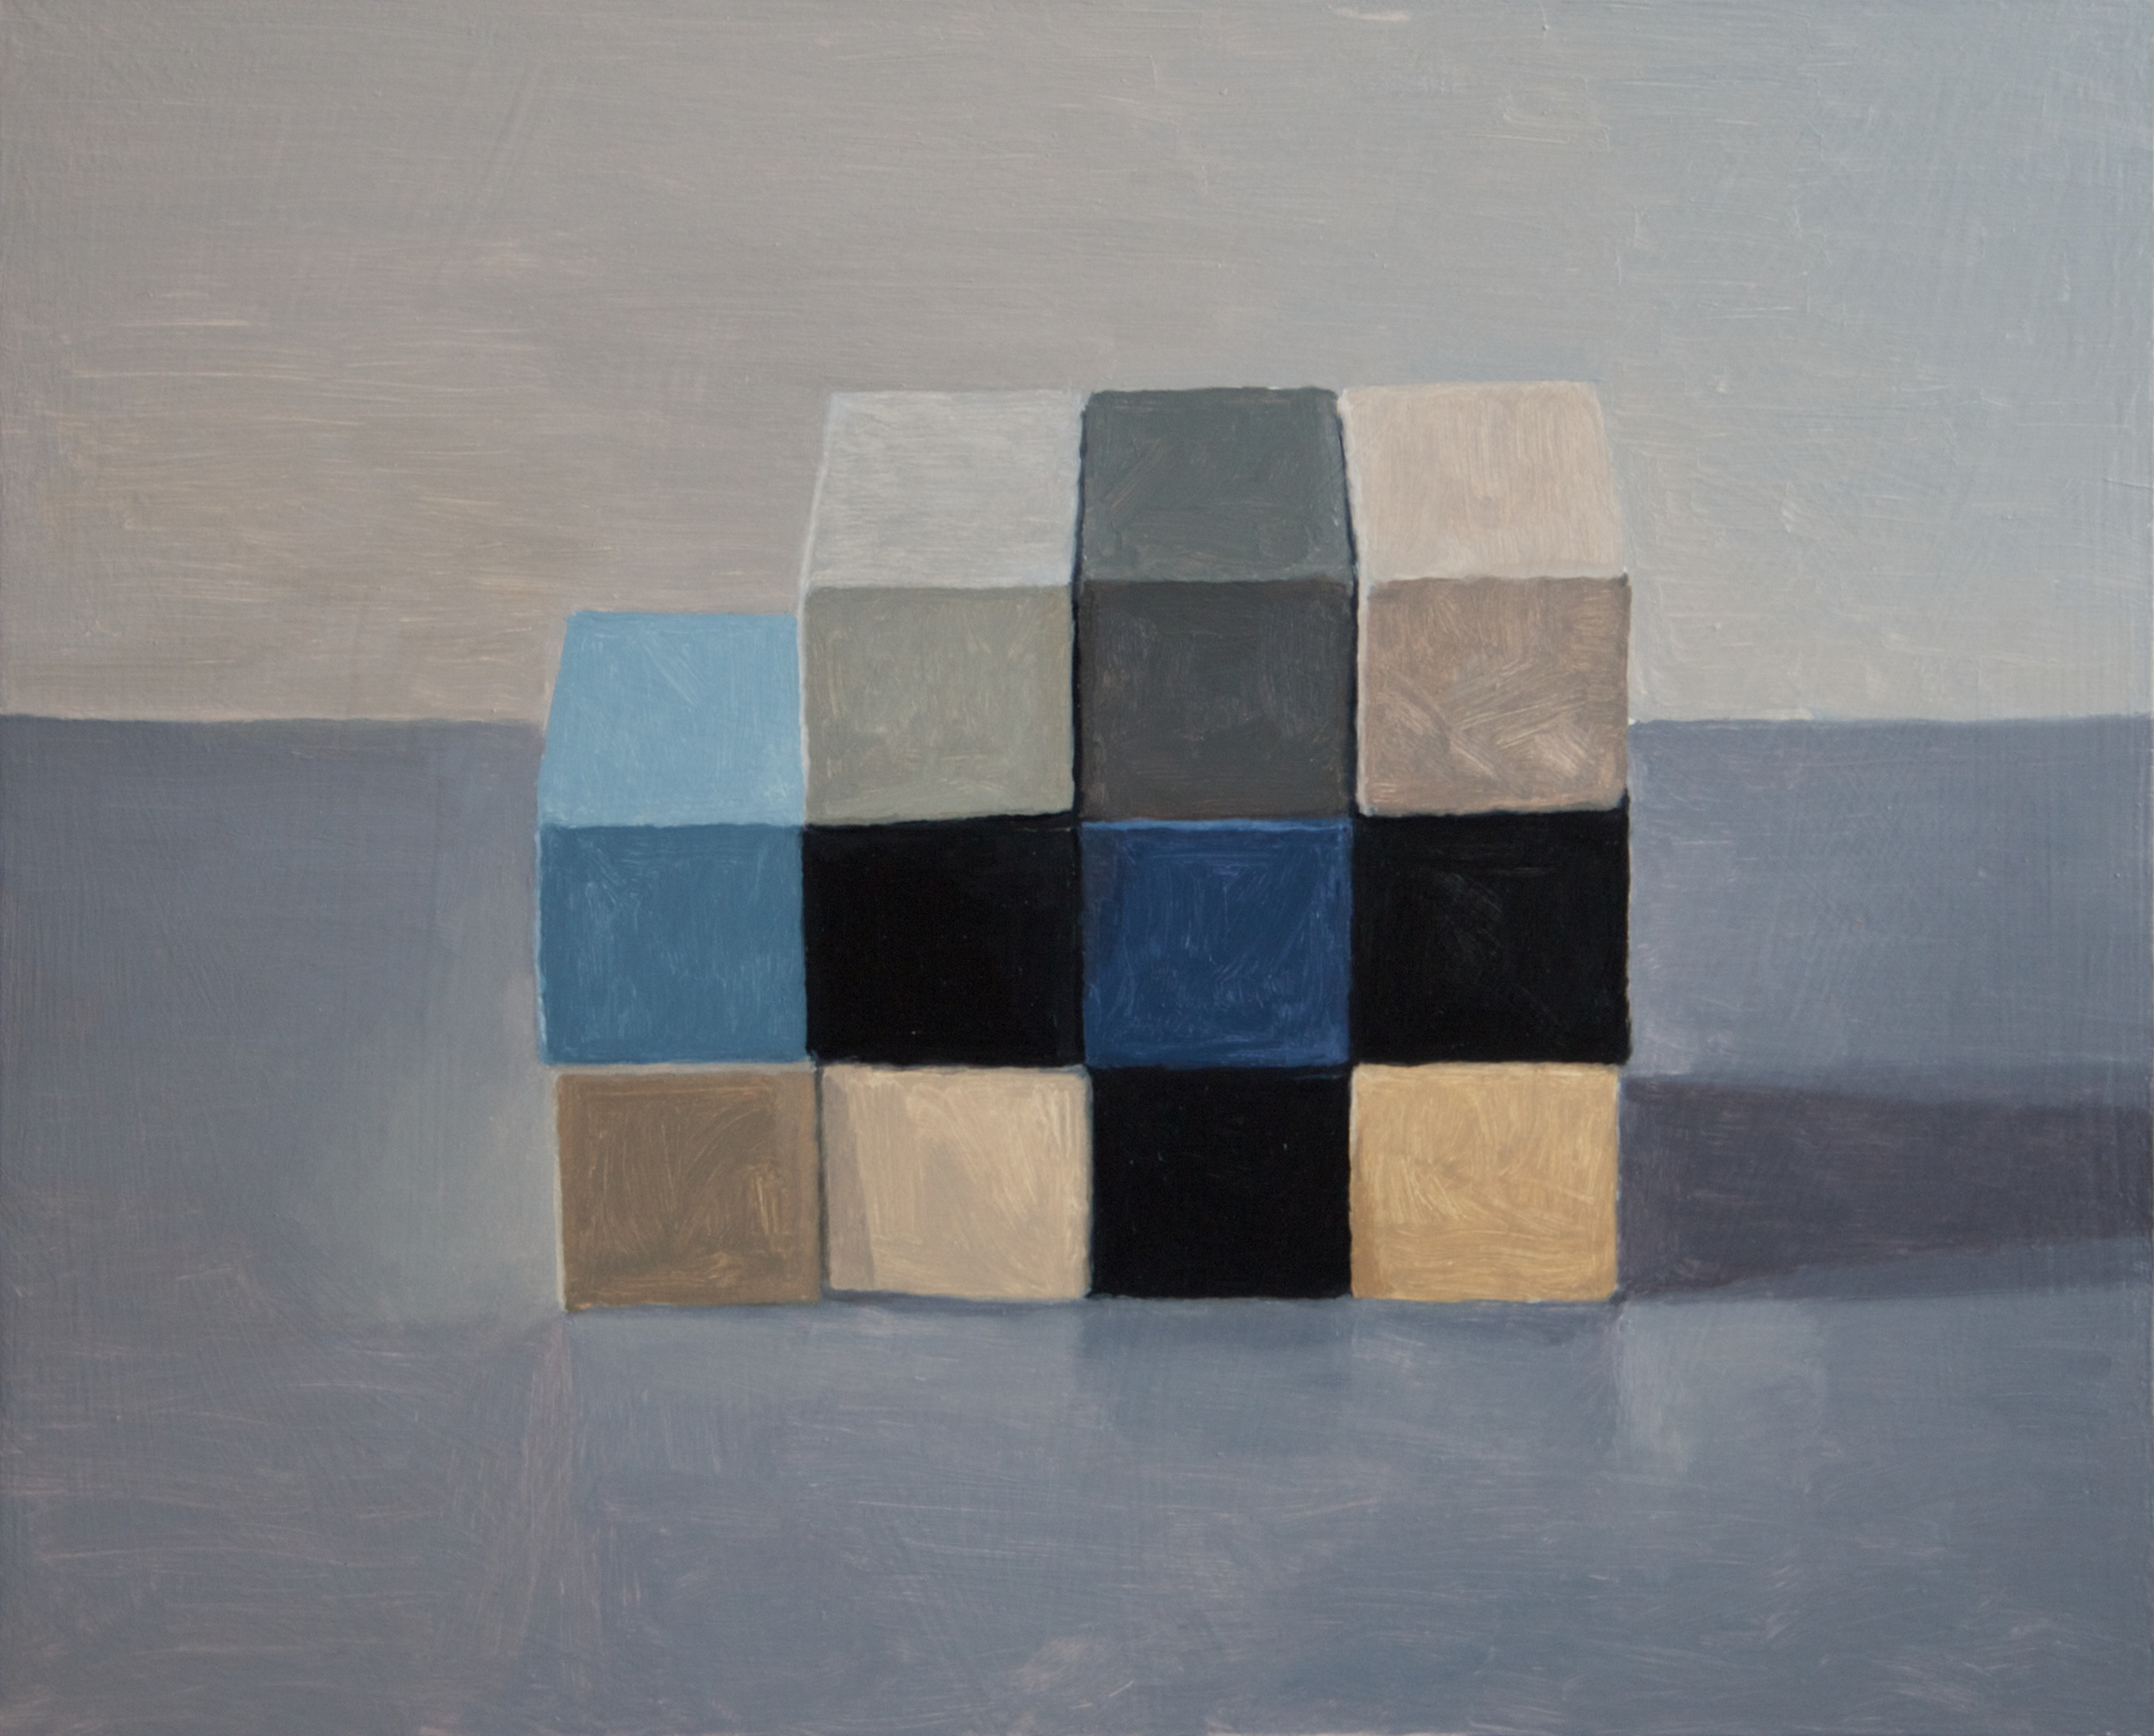 Checkerboard II, 2013 Oil on wood, 40 x 50 cm